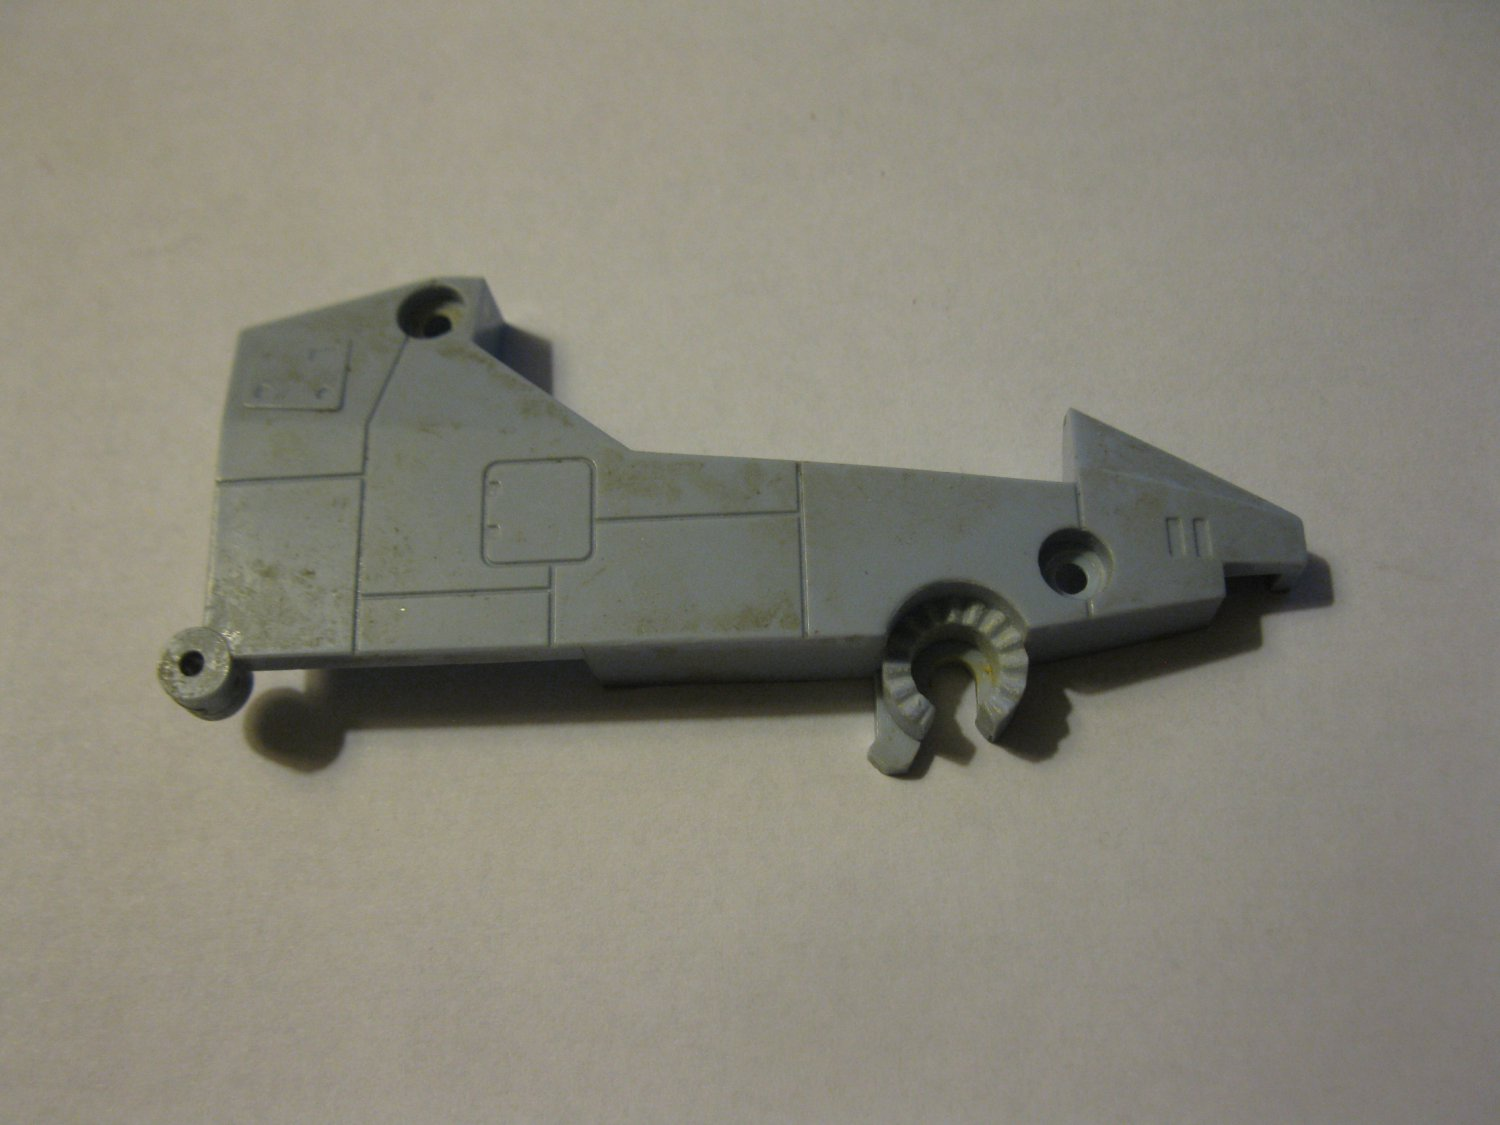 G1 Transformers Action figure part: 1985 Whirl - Helicopter Cockpit Right SIde